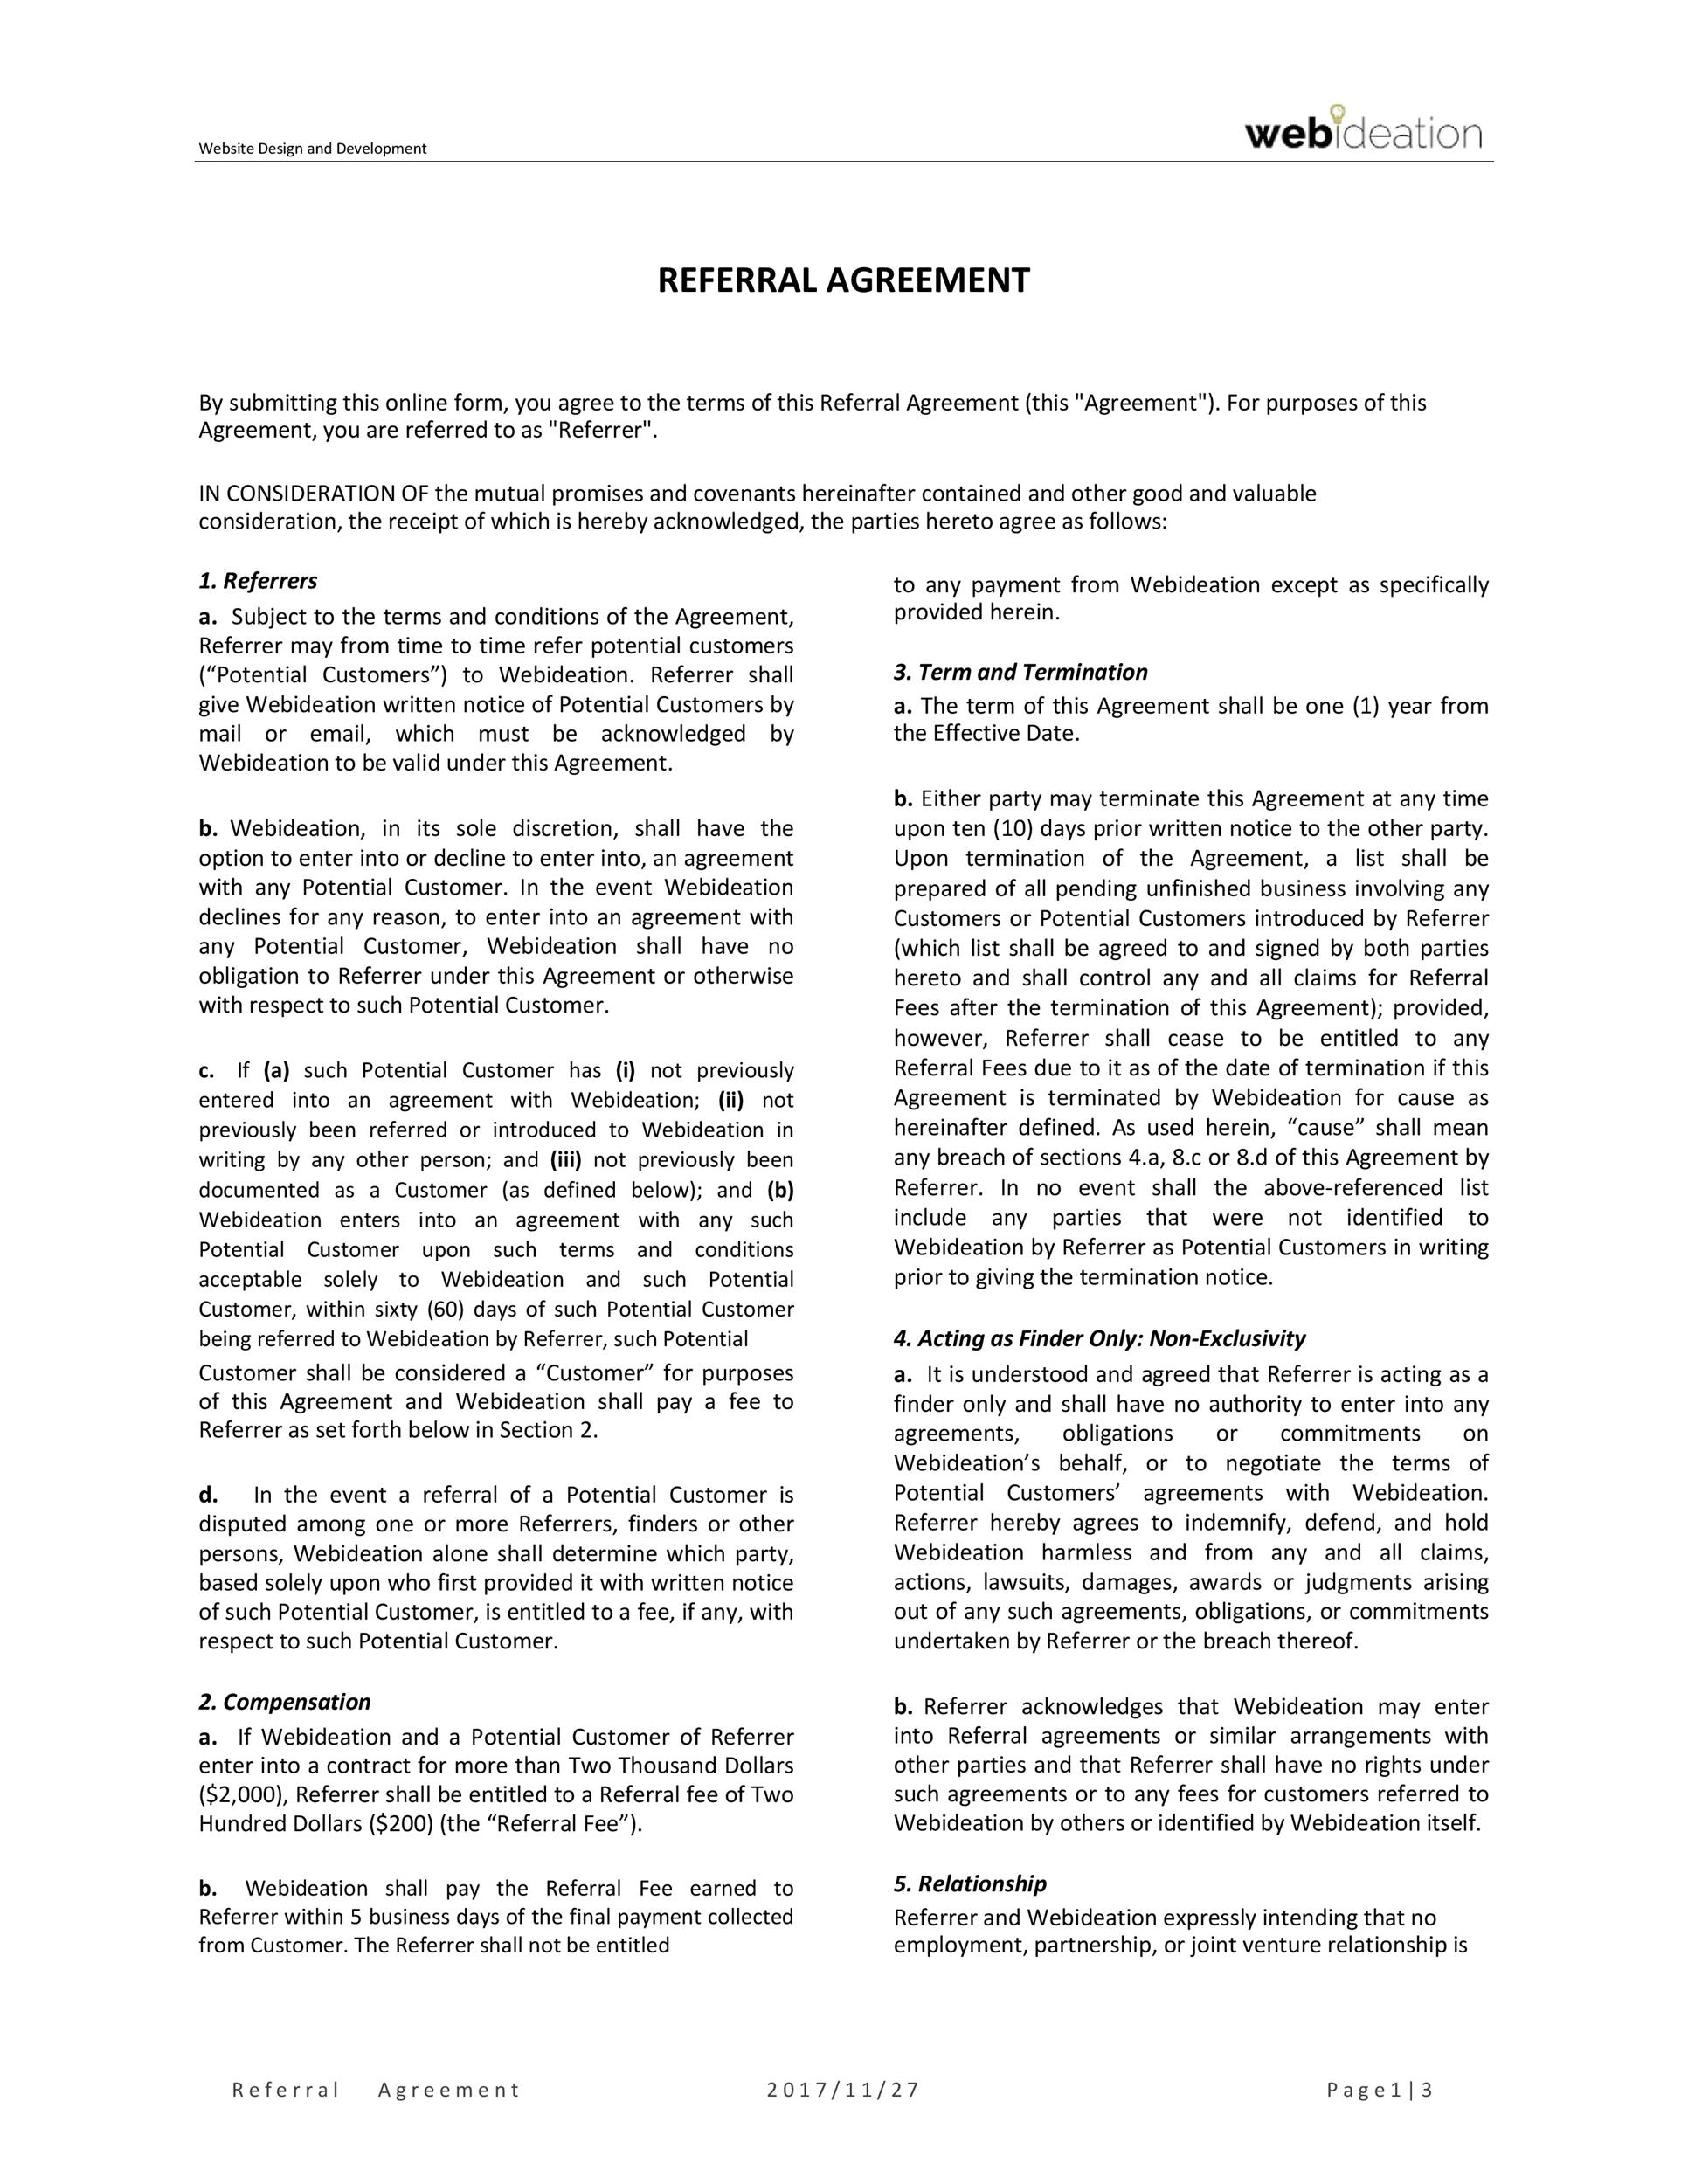 Free referral agreement template 44